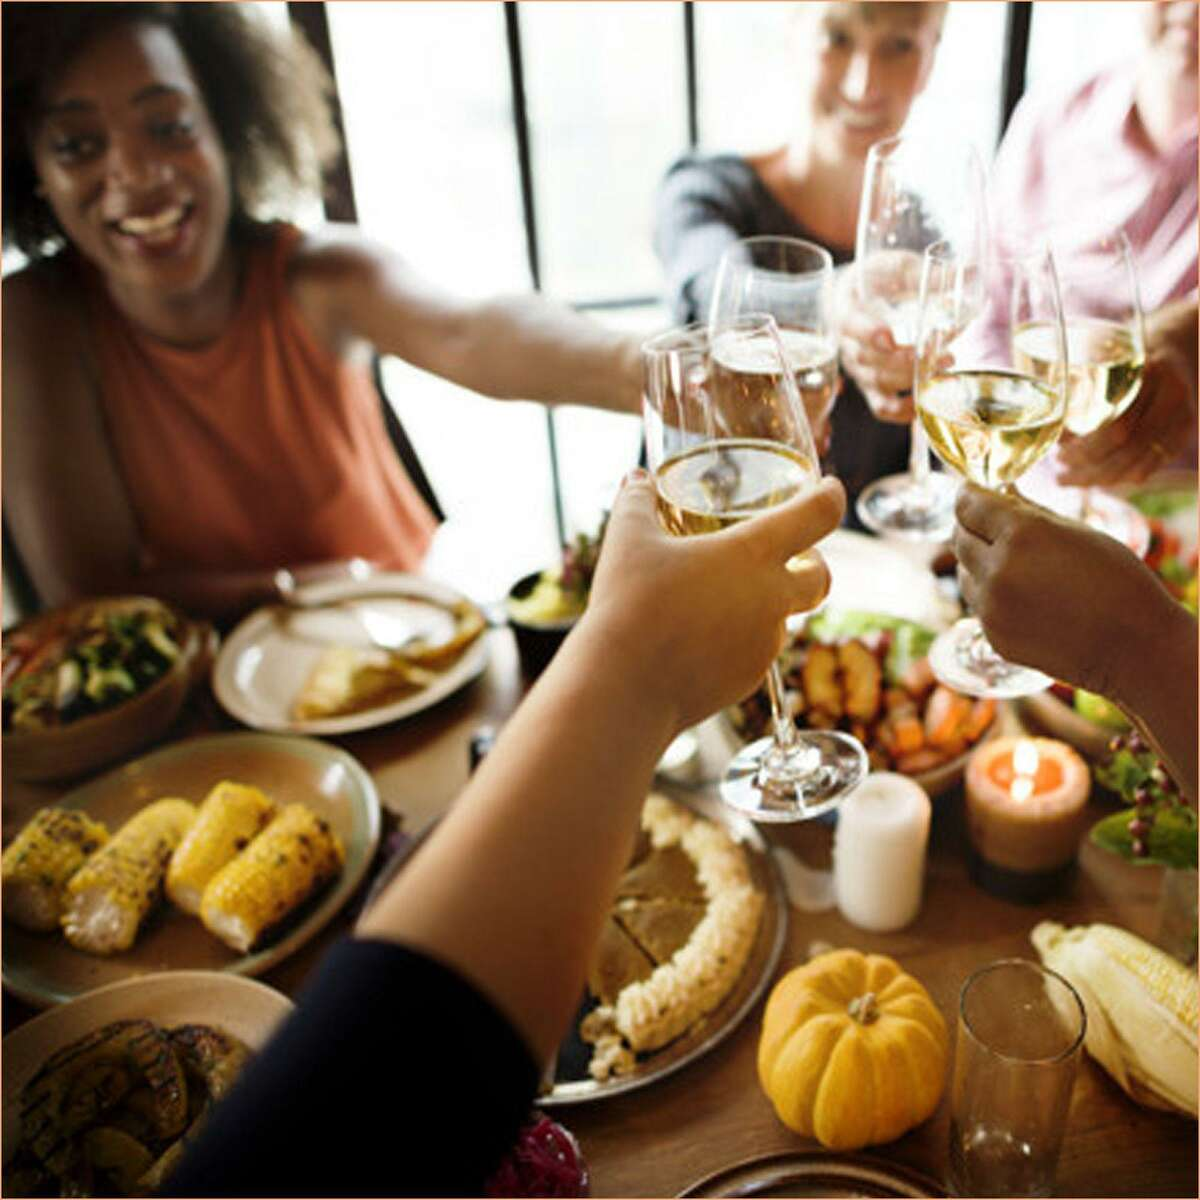 November is the month of feasts and celebrating with the giving of thanks for what should be a bountiful year. What wines should you pair for your big feast? Most of our foods like turkey, hams, sausage, pot roast, and such on the Thanksgiving Table are probably grown in Texas. Local Texas wines would pair very well with these local Texas foods.